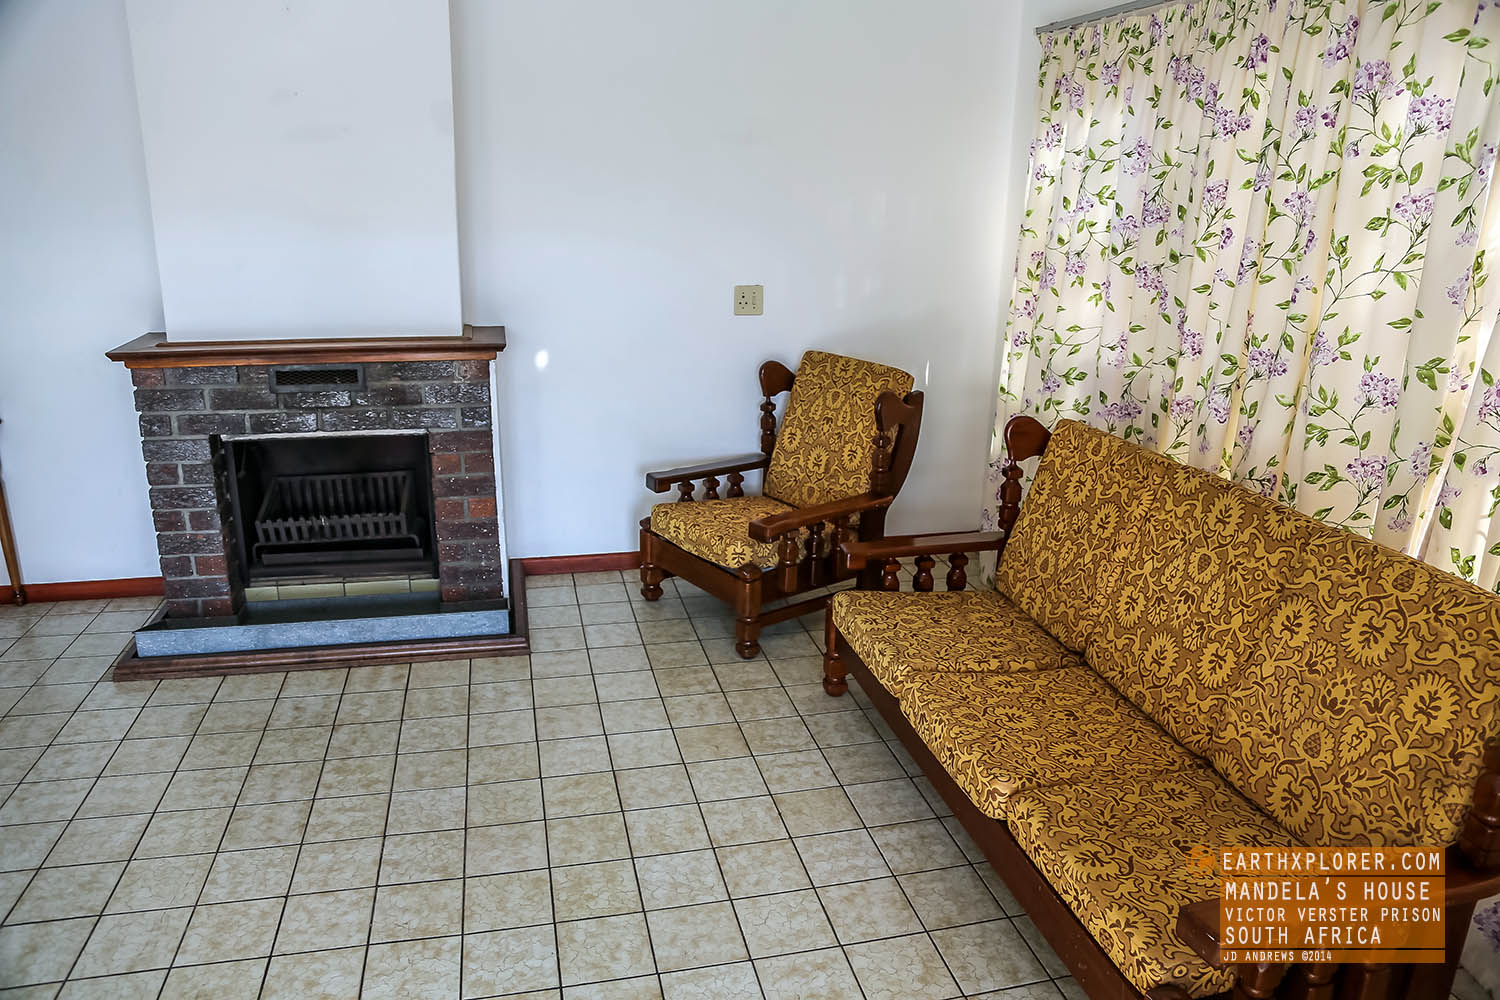 fireplace Mandelas House Victor Verster Prison South Africa.jpg